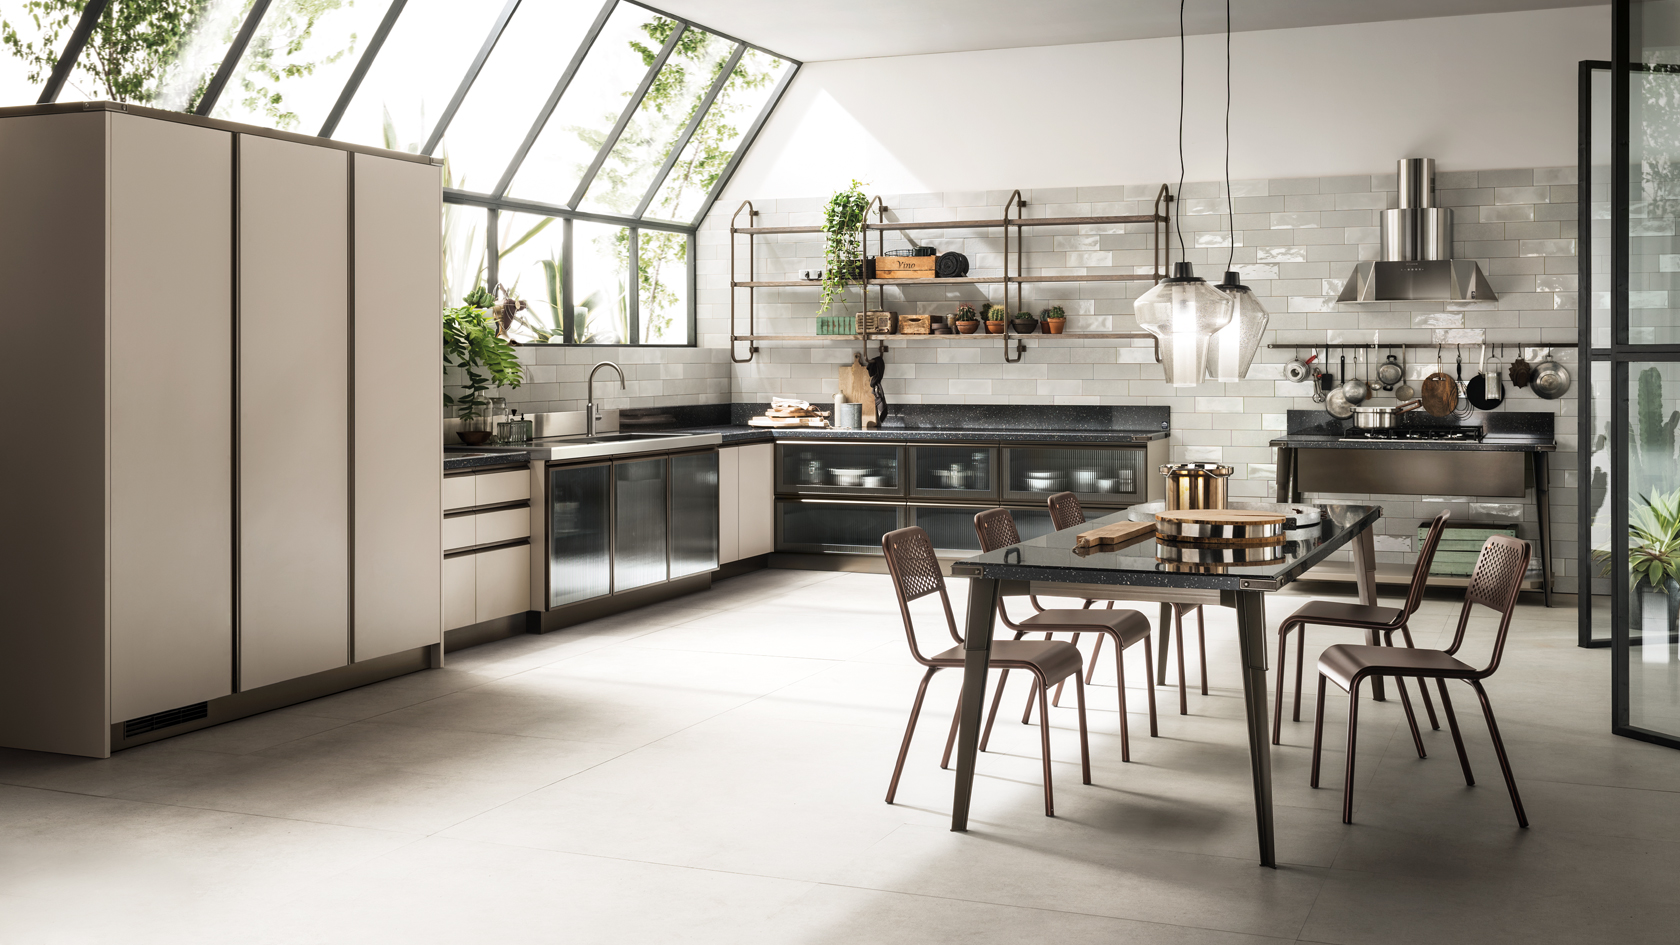 Cucina Scavolini Cracco Scavolini Fabulous Living Room The Lines Of The Snack Top The